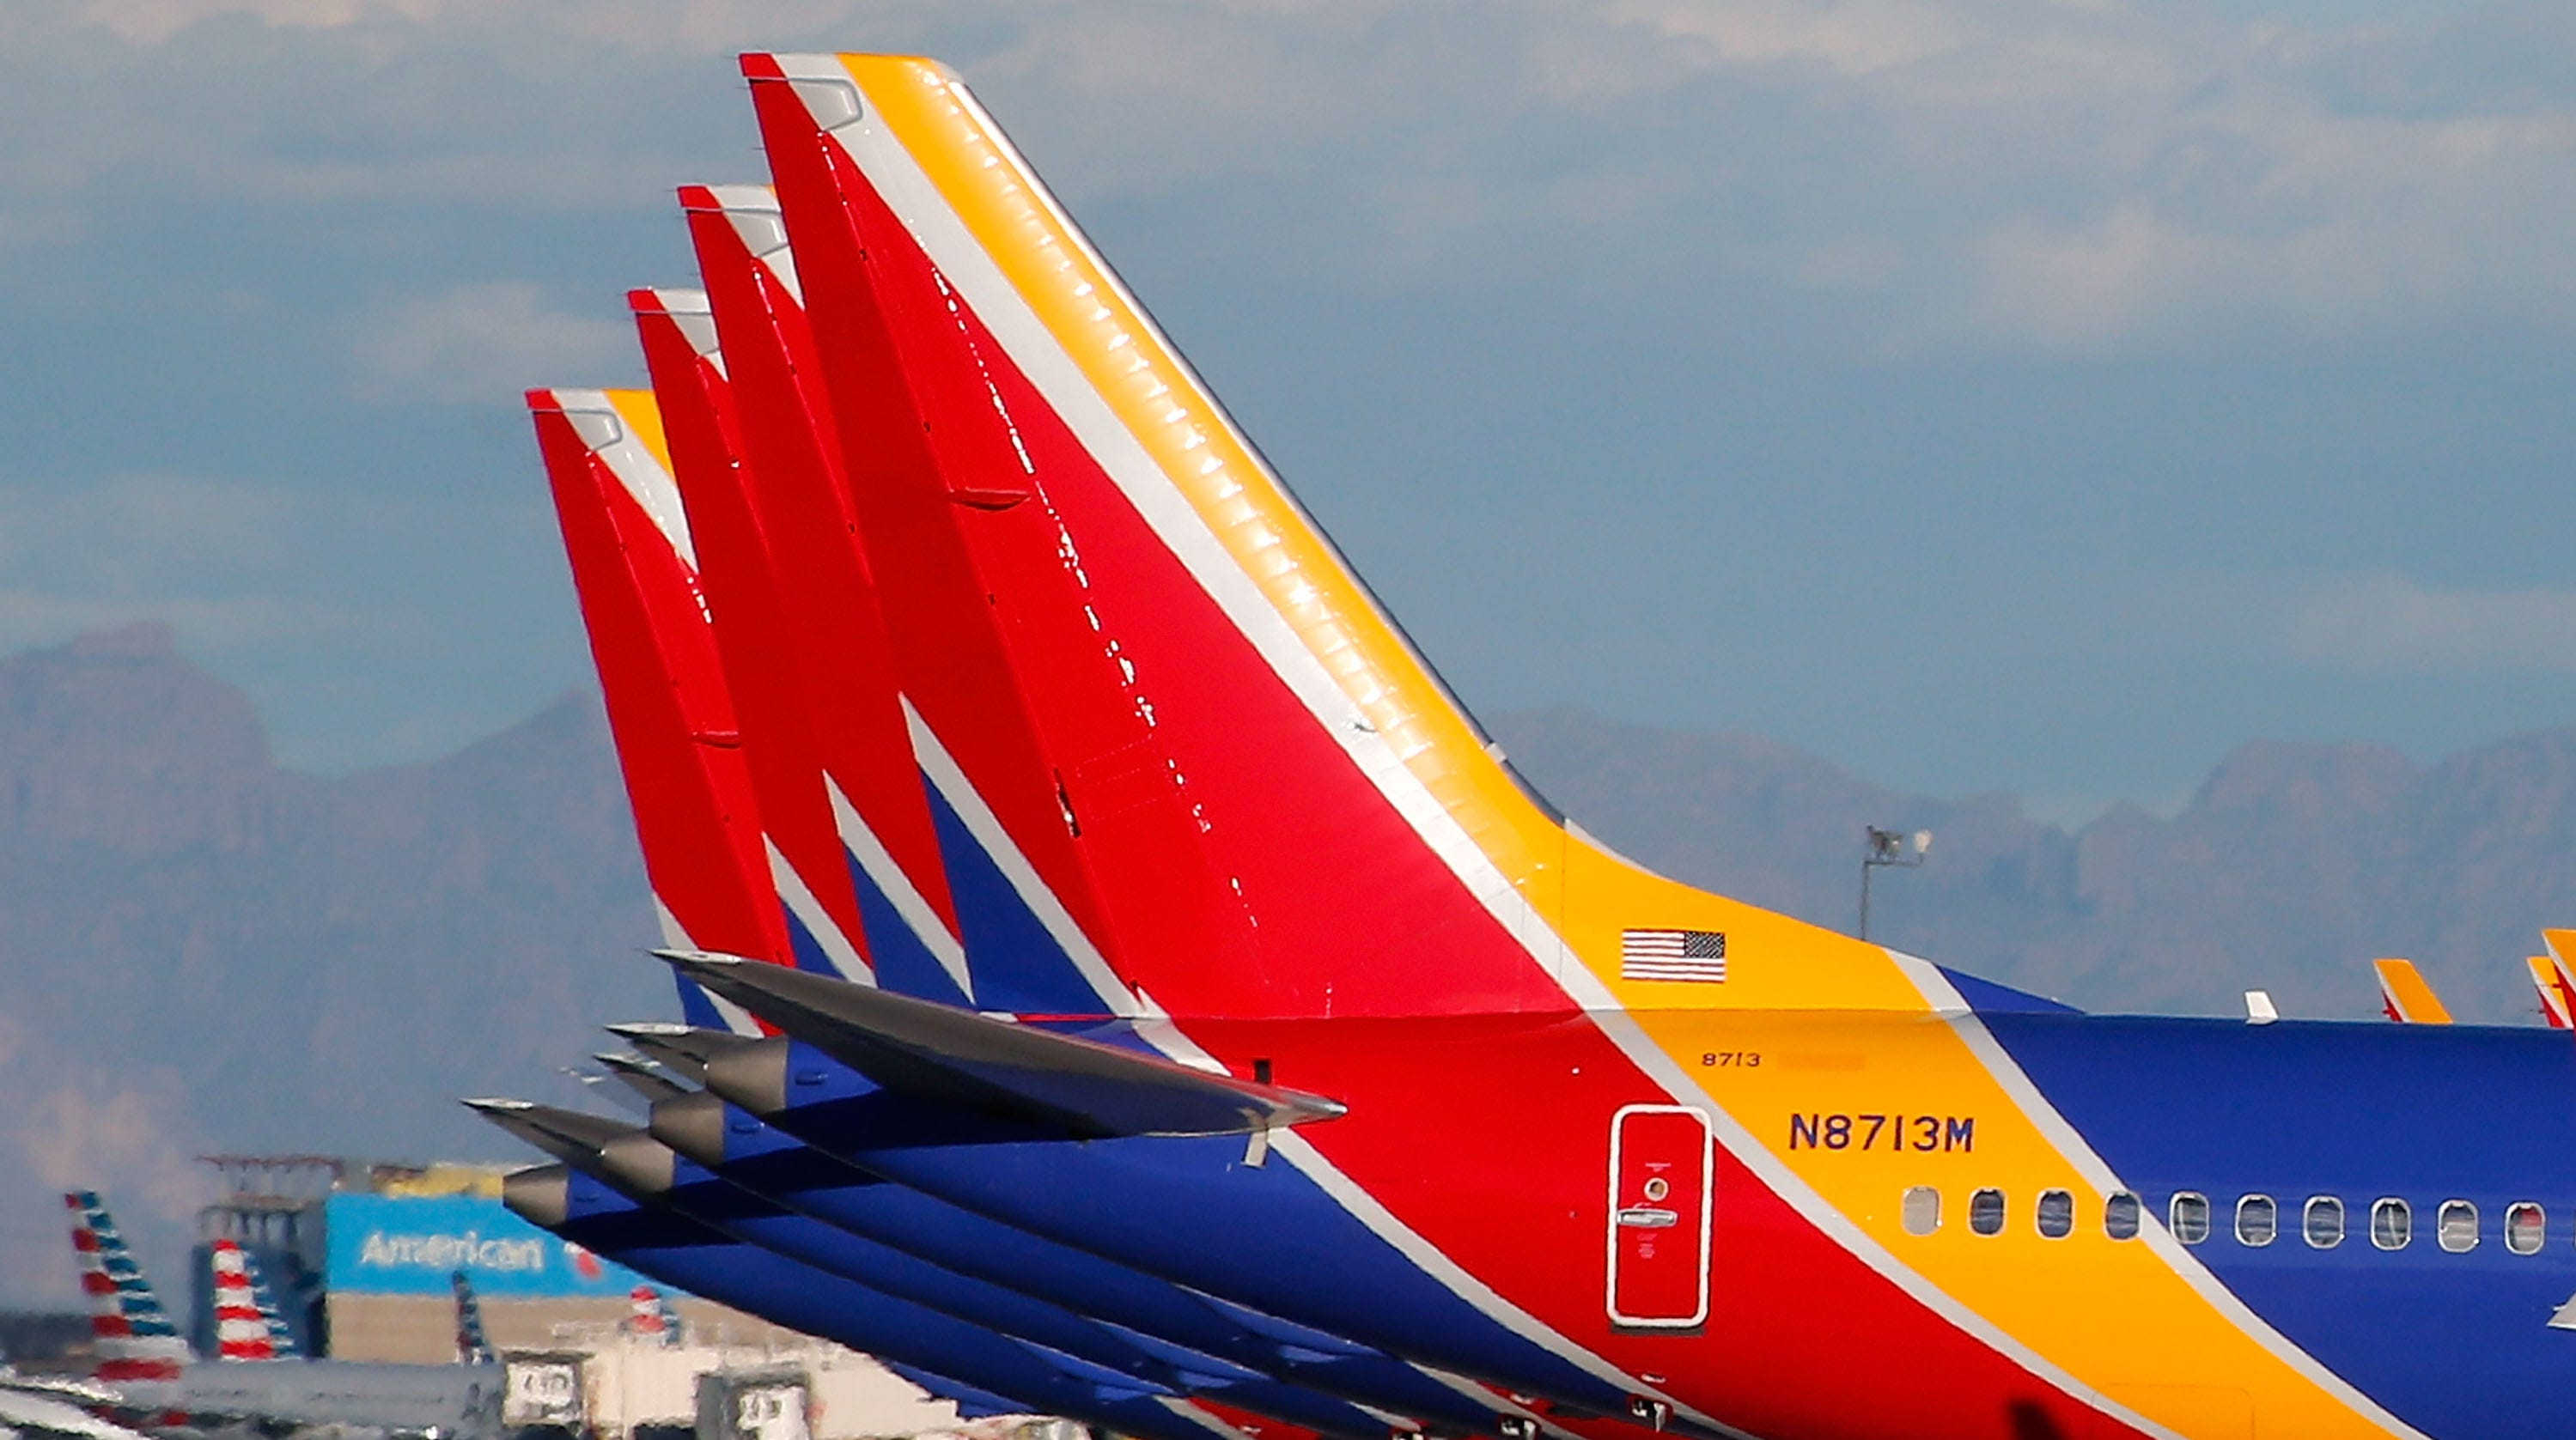 A group of Southwest Airlines Boeing 737 MAX 8 aircraft sit on the tarmac at Phoenix Sky Harbor International Airport on March 13, 2019 in Phoenix, Arizona. The United States has followed countries around the world and has grounded all Boeing 737 Max 8 aircraft following the crash of an Ethiopia Airlines 737 Max 8.